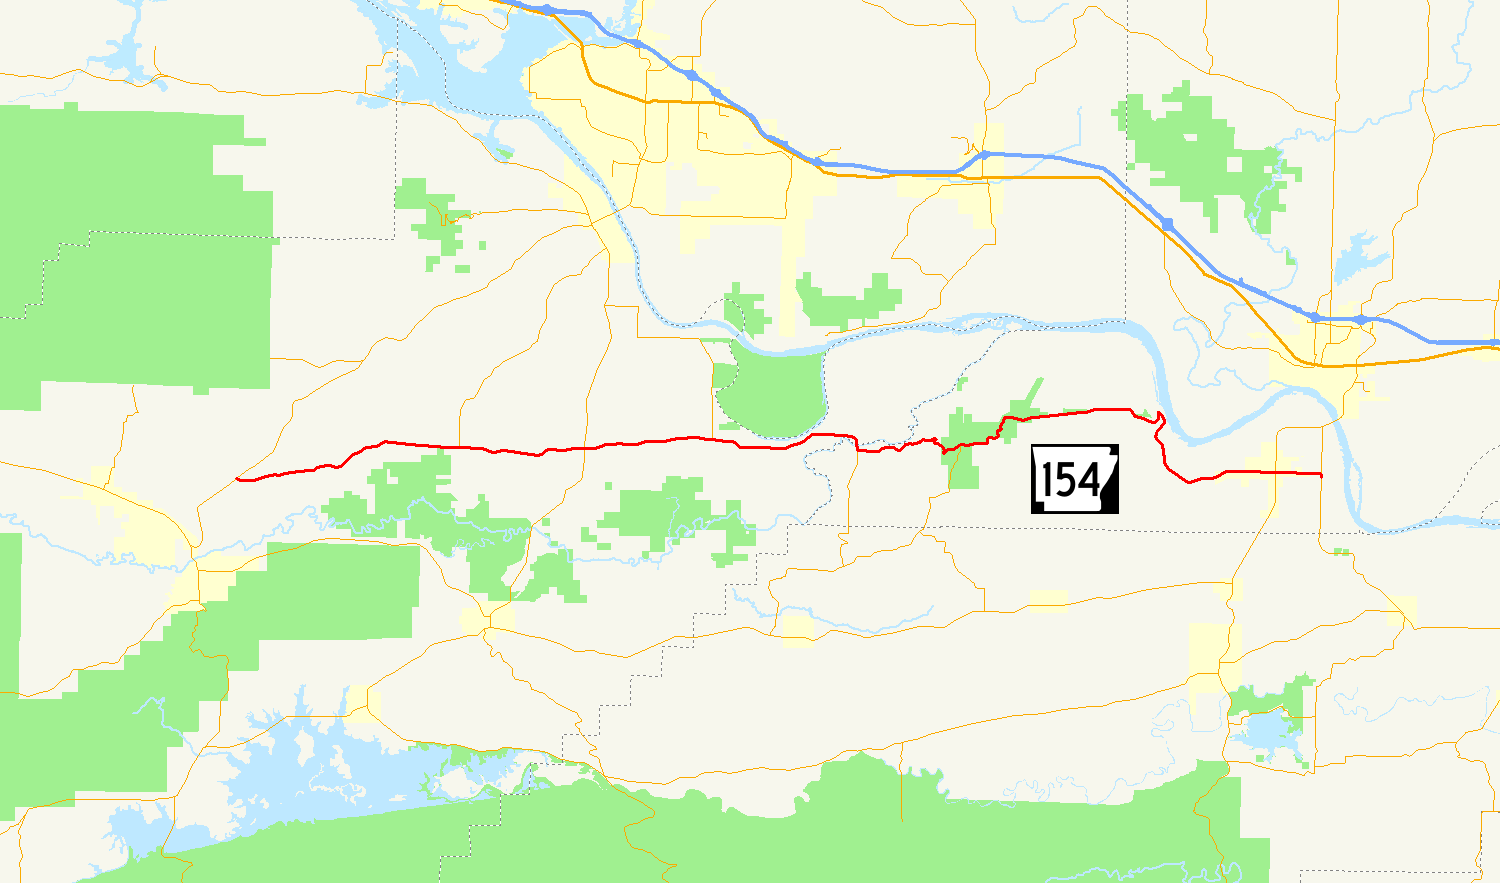 Arkansas Highway 154 - Wikipedia